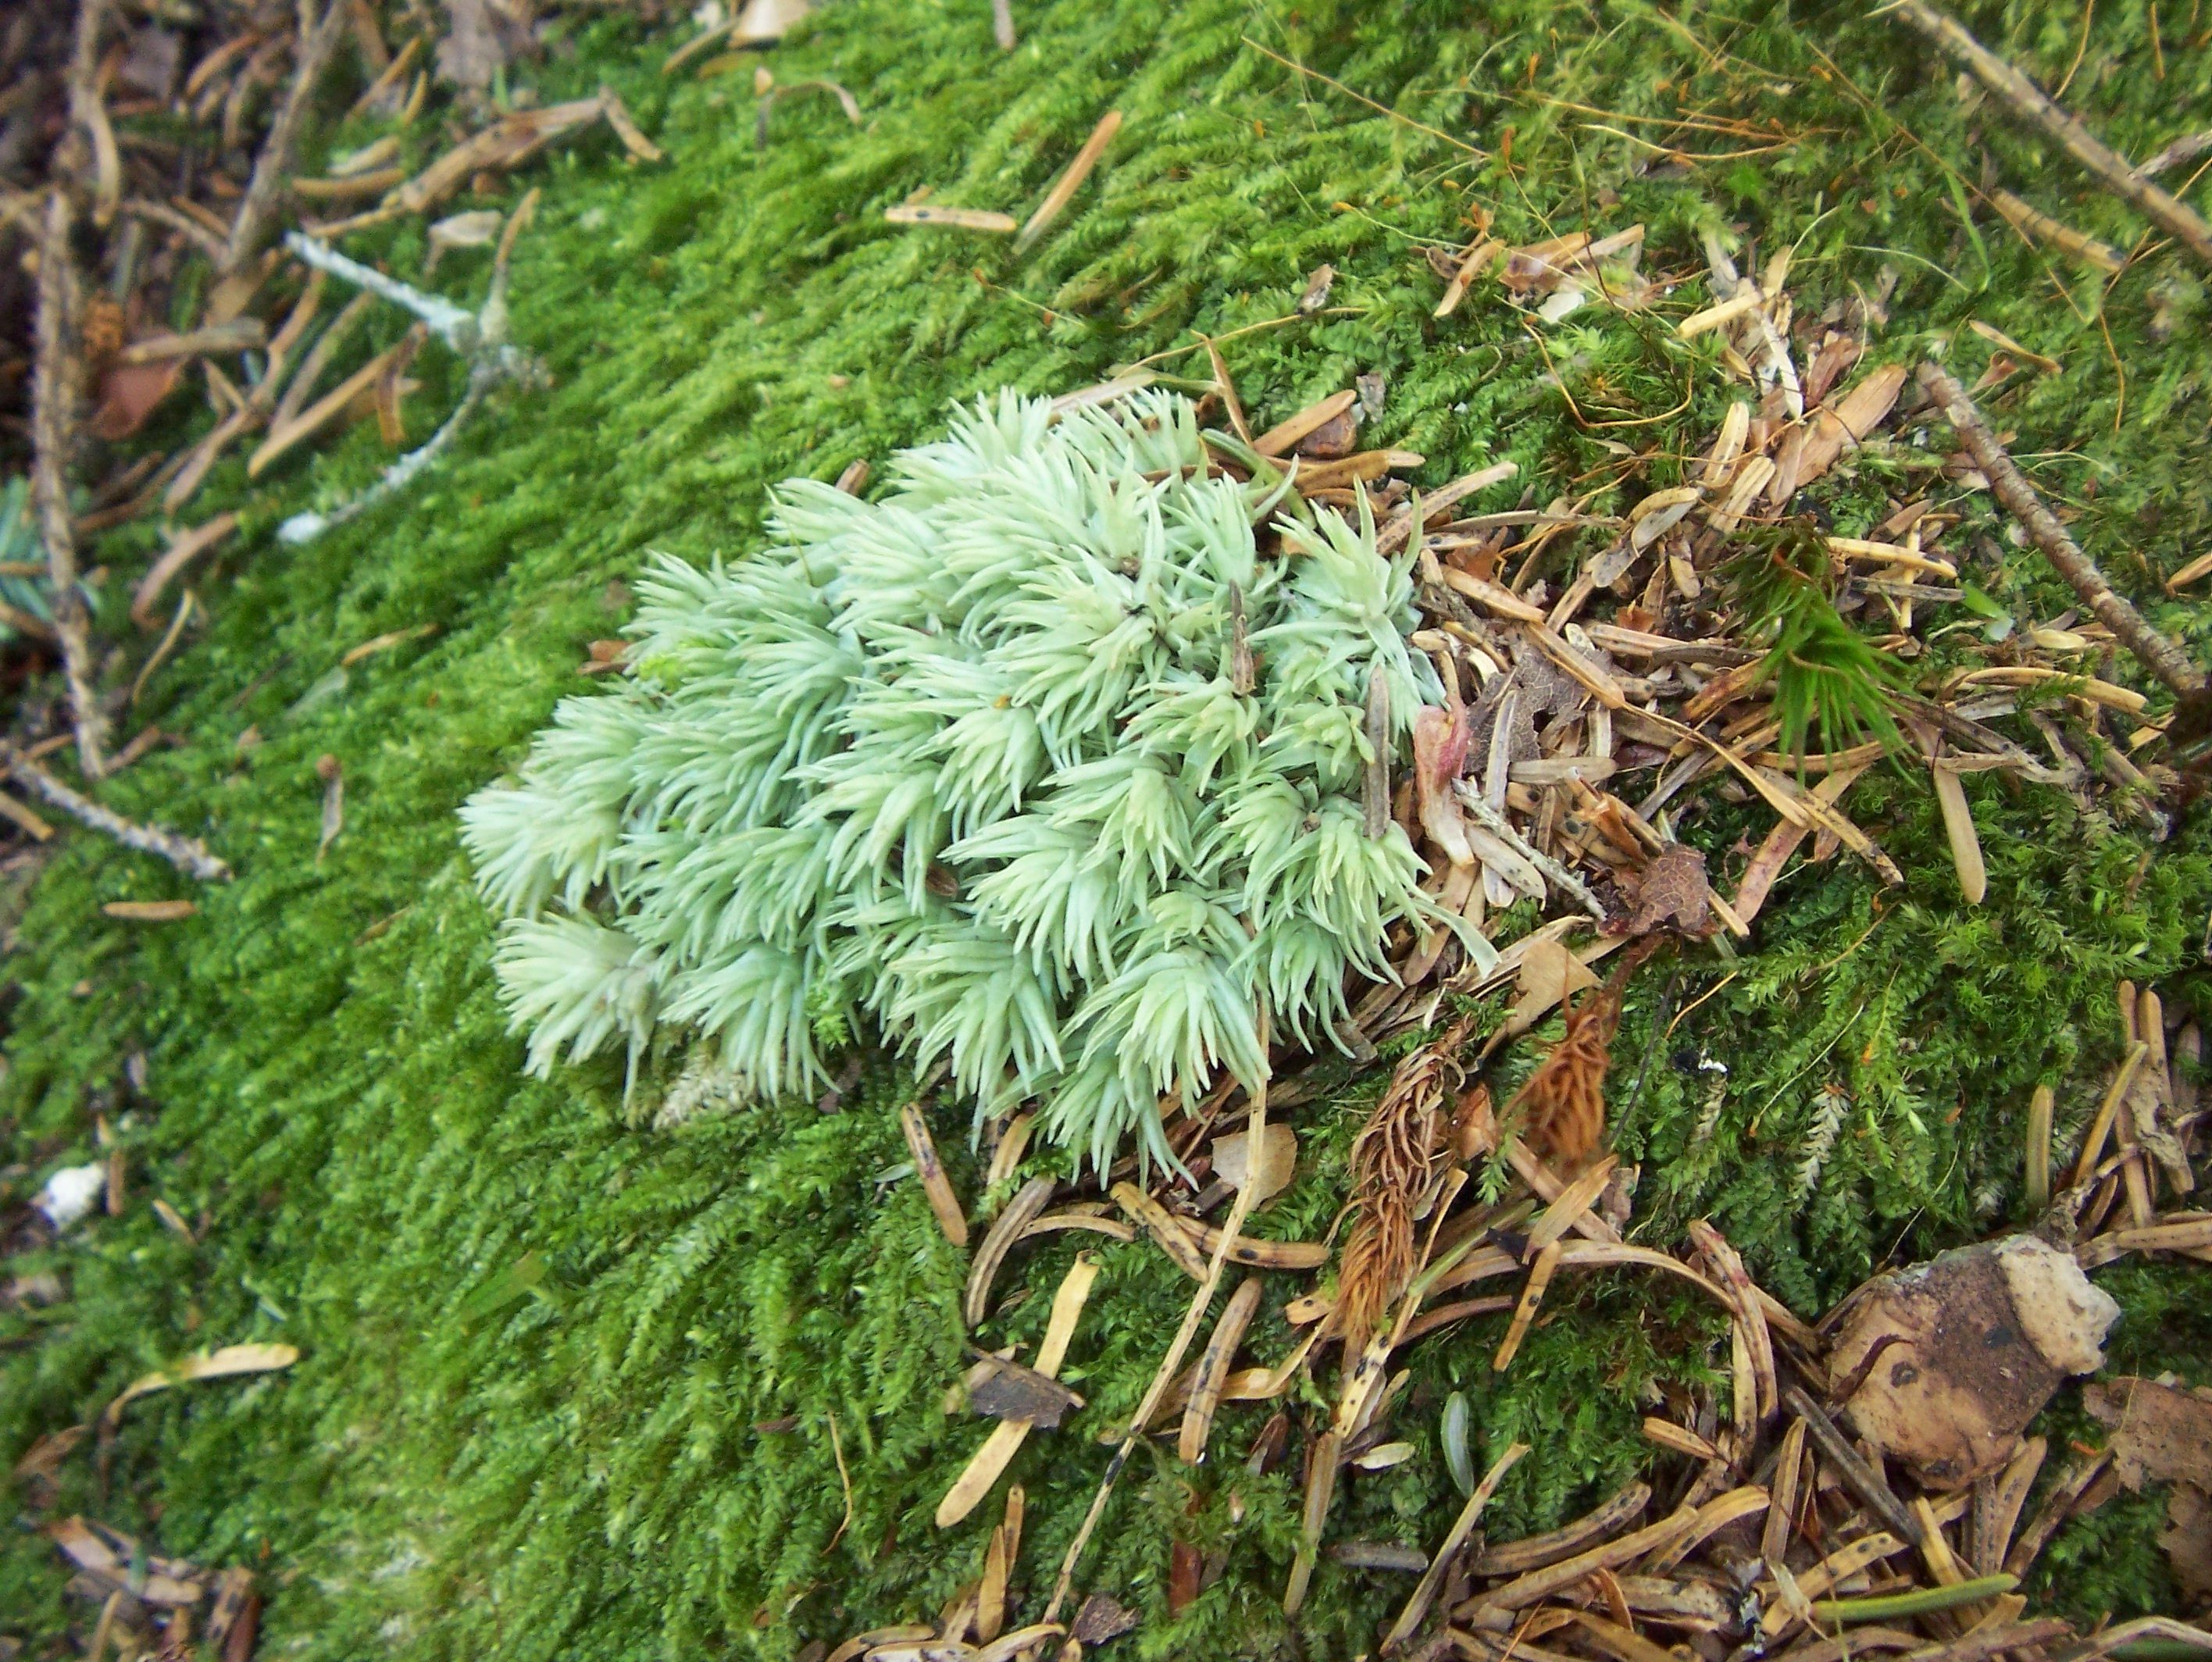 Two moss species grow together.